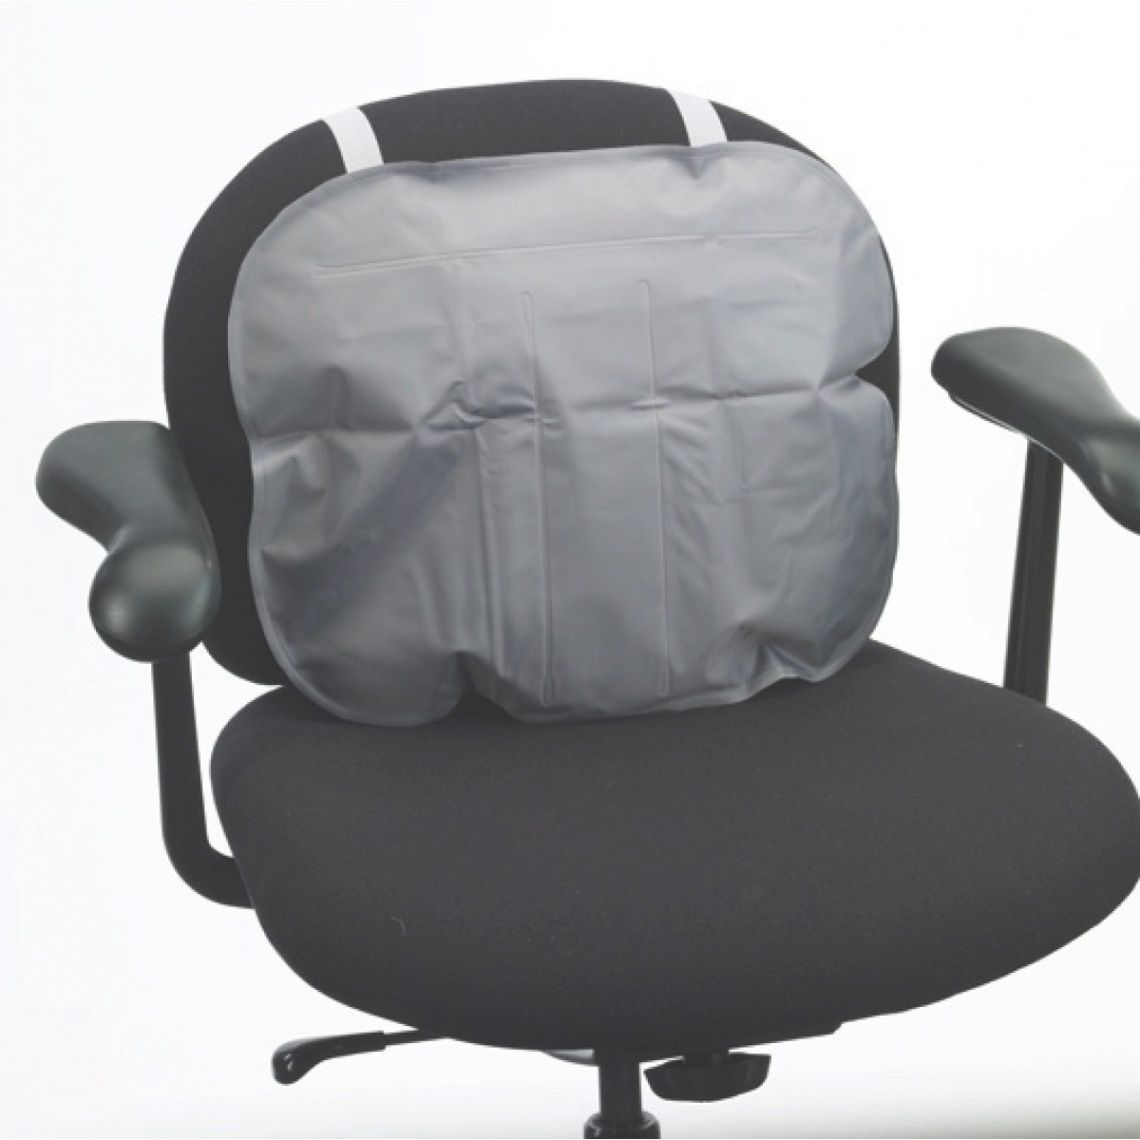 55 Best Back Support Cushion For Office Chair Best Paint To Paint Furniture Check More At Http Www Office Chair Cushion Ergonomic Desk Chair Office Chair